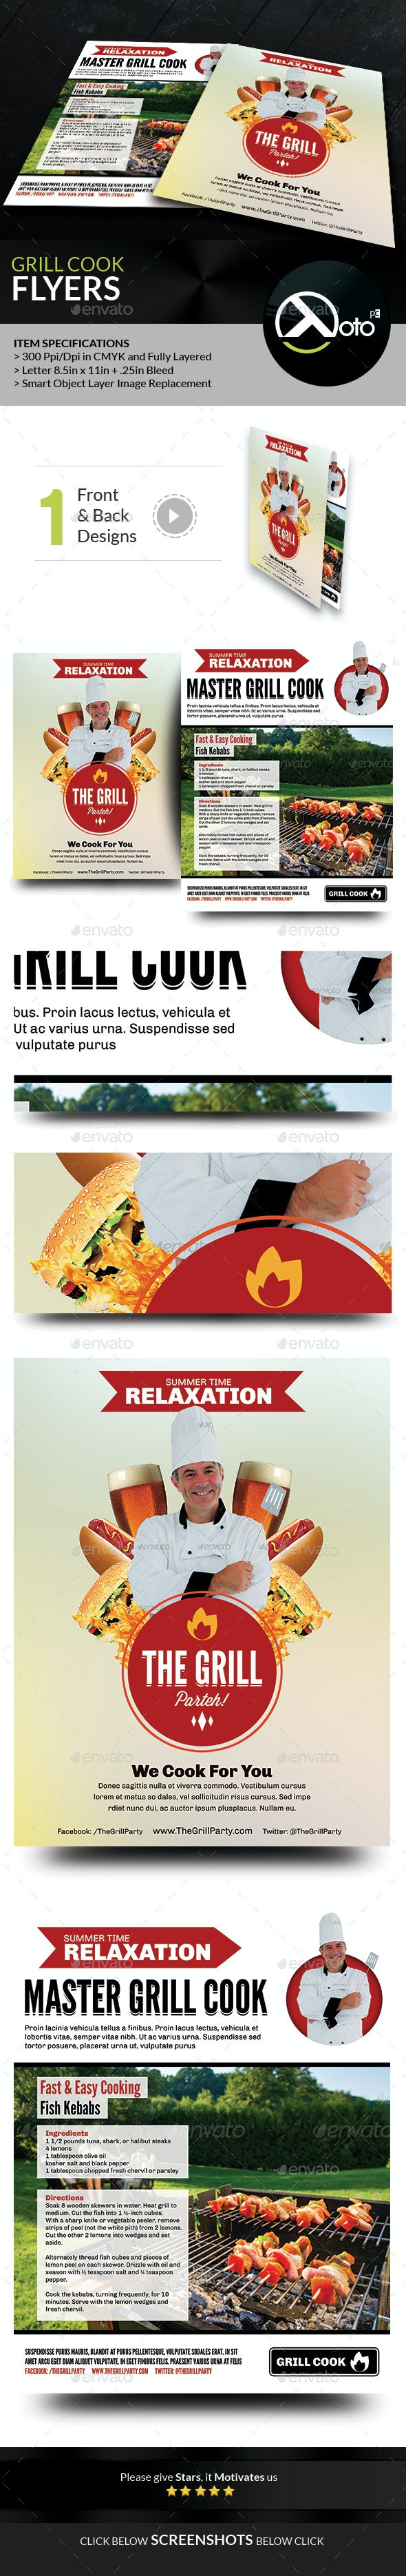 Grill Cook Outdoor Kebab Party Flyer - Flyers Print Templates